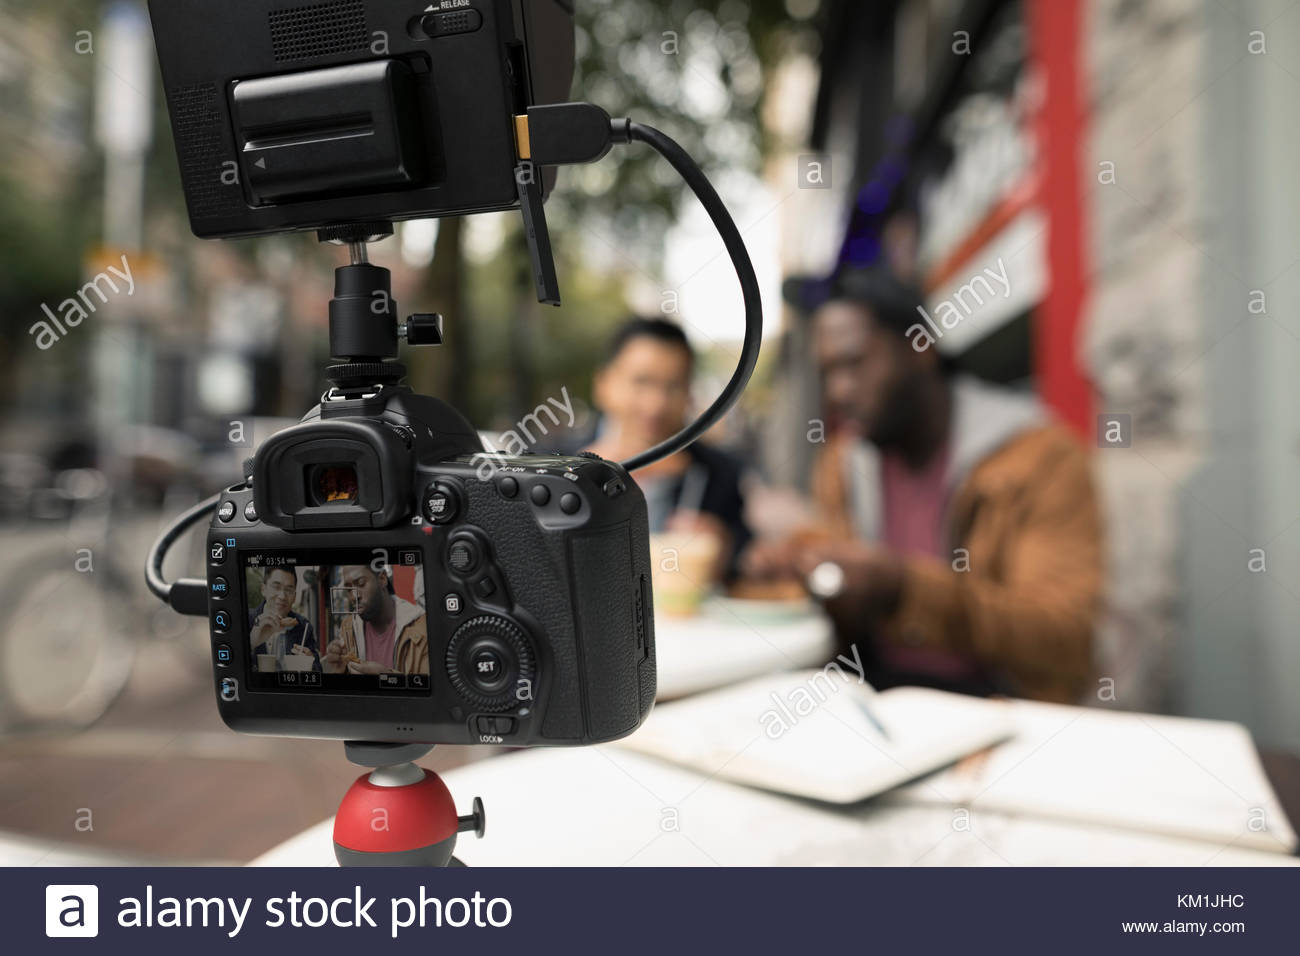 Men vlogging with video camera, eating at urban sidewalk cafe - Stock Image